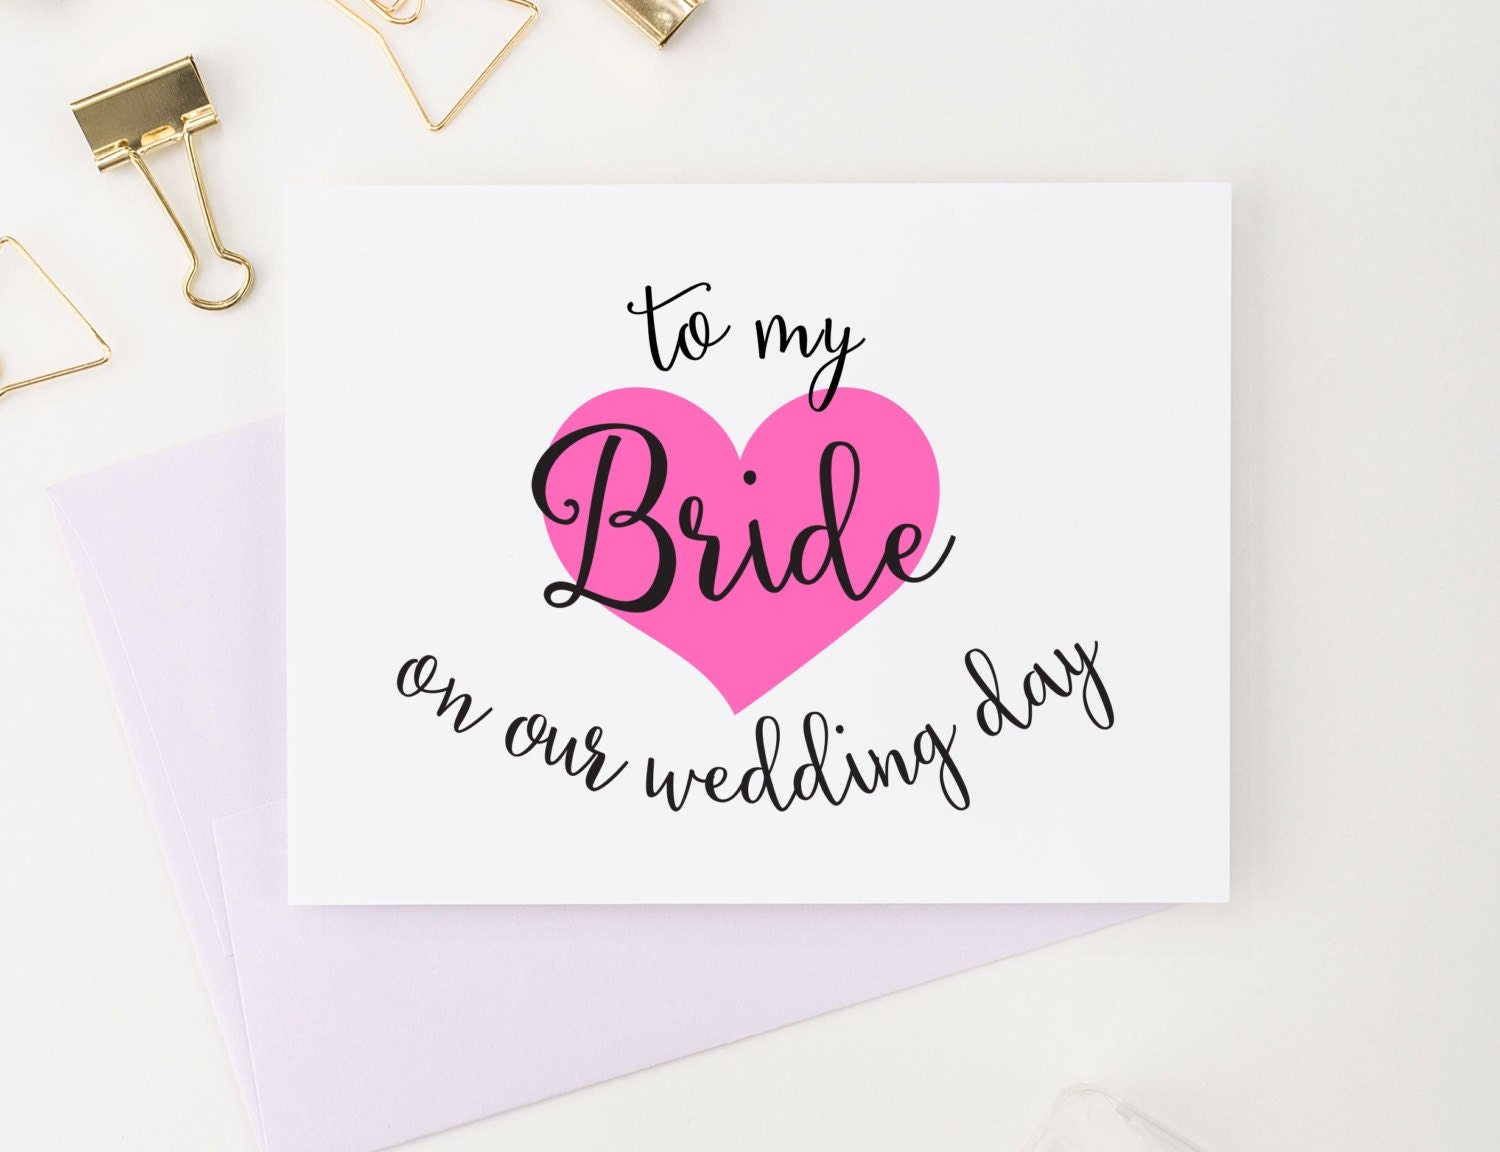 To my Bride on our wedding day Card To my Bride Card Wedding | Etsy